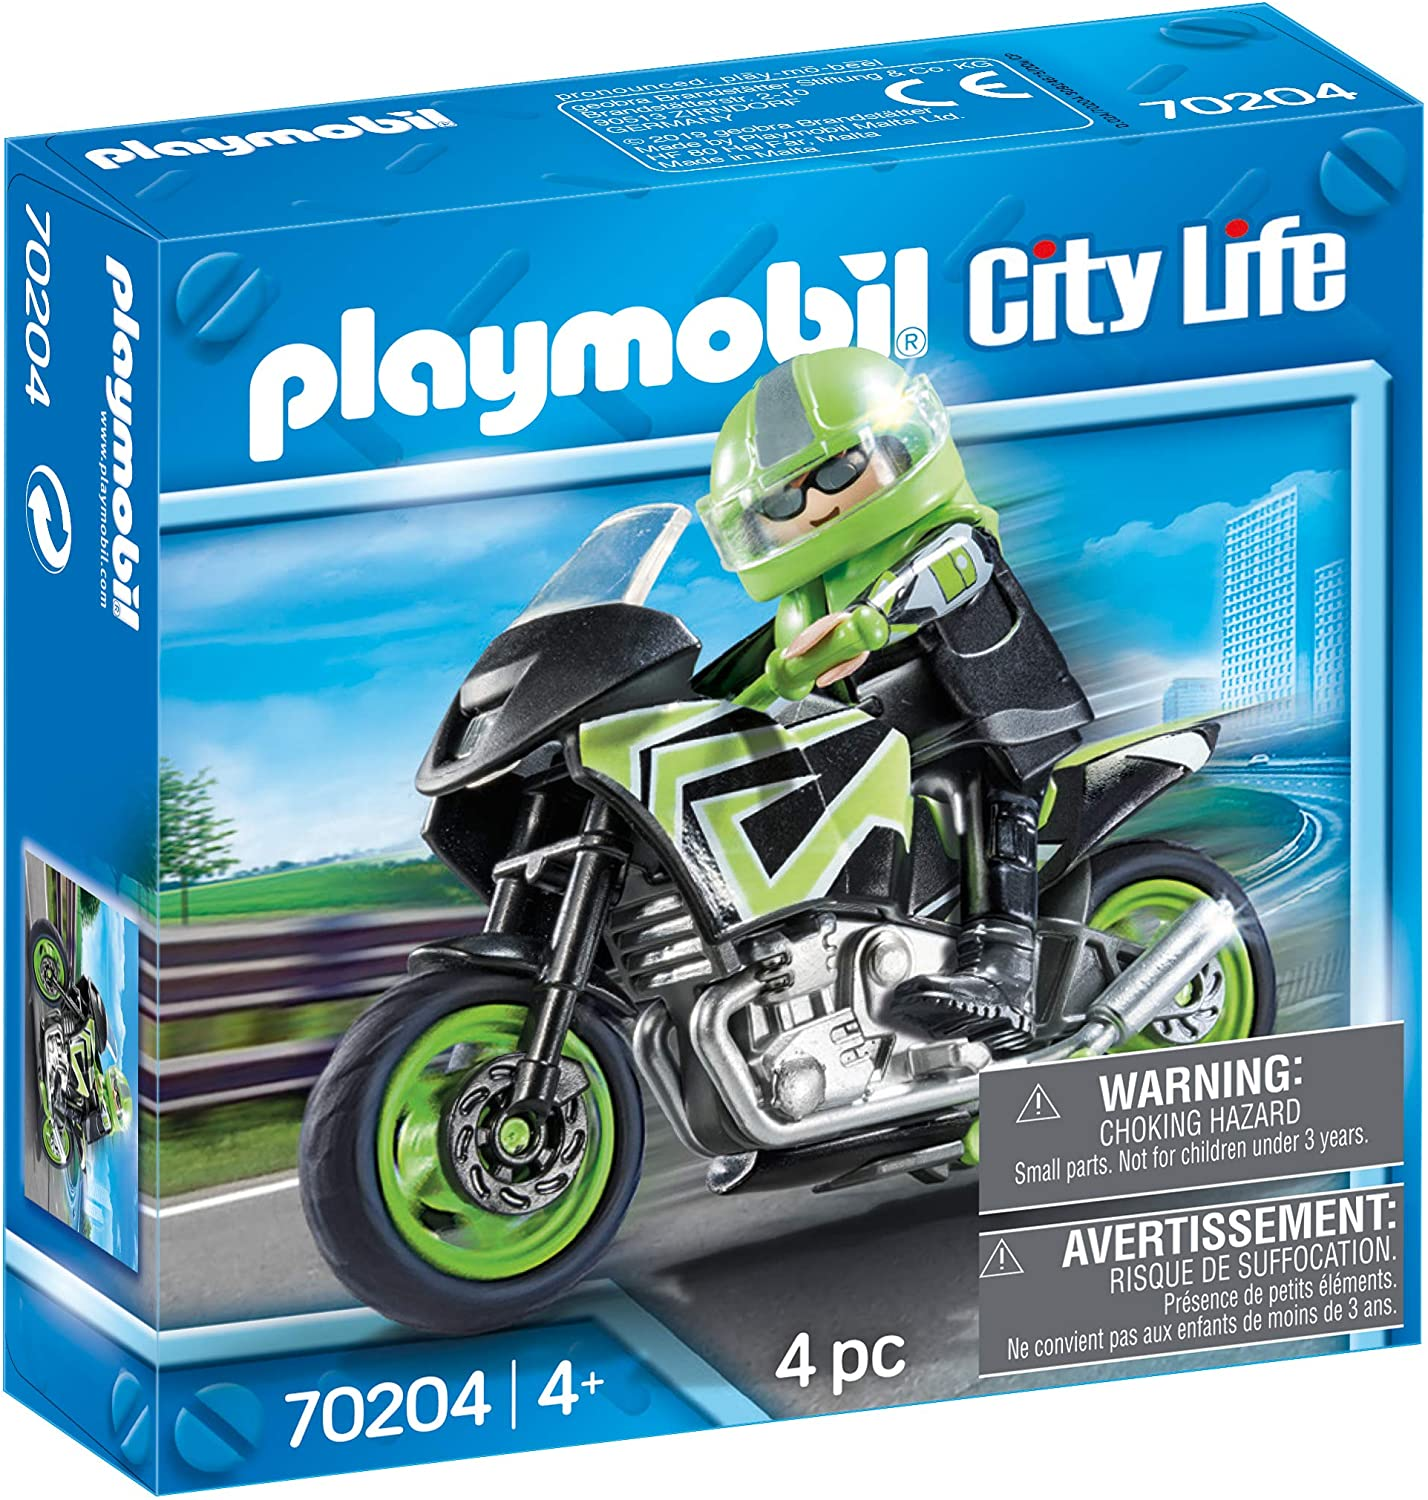 Playmobil City Life Biker amazon